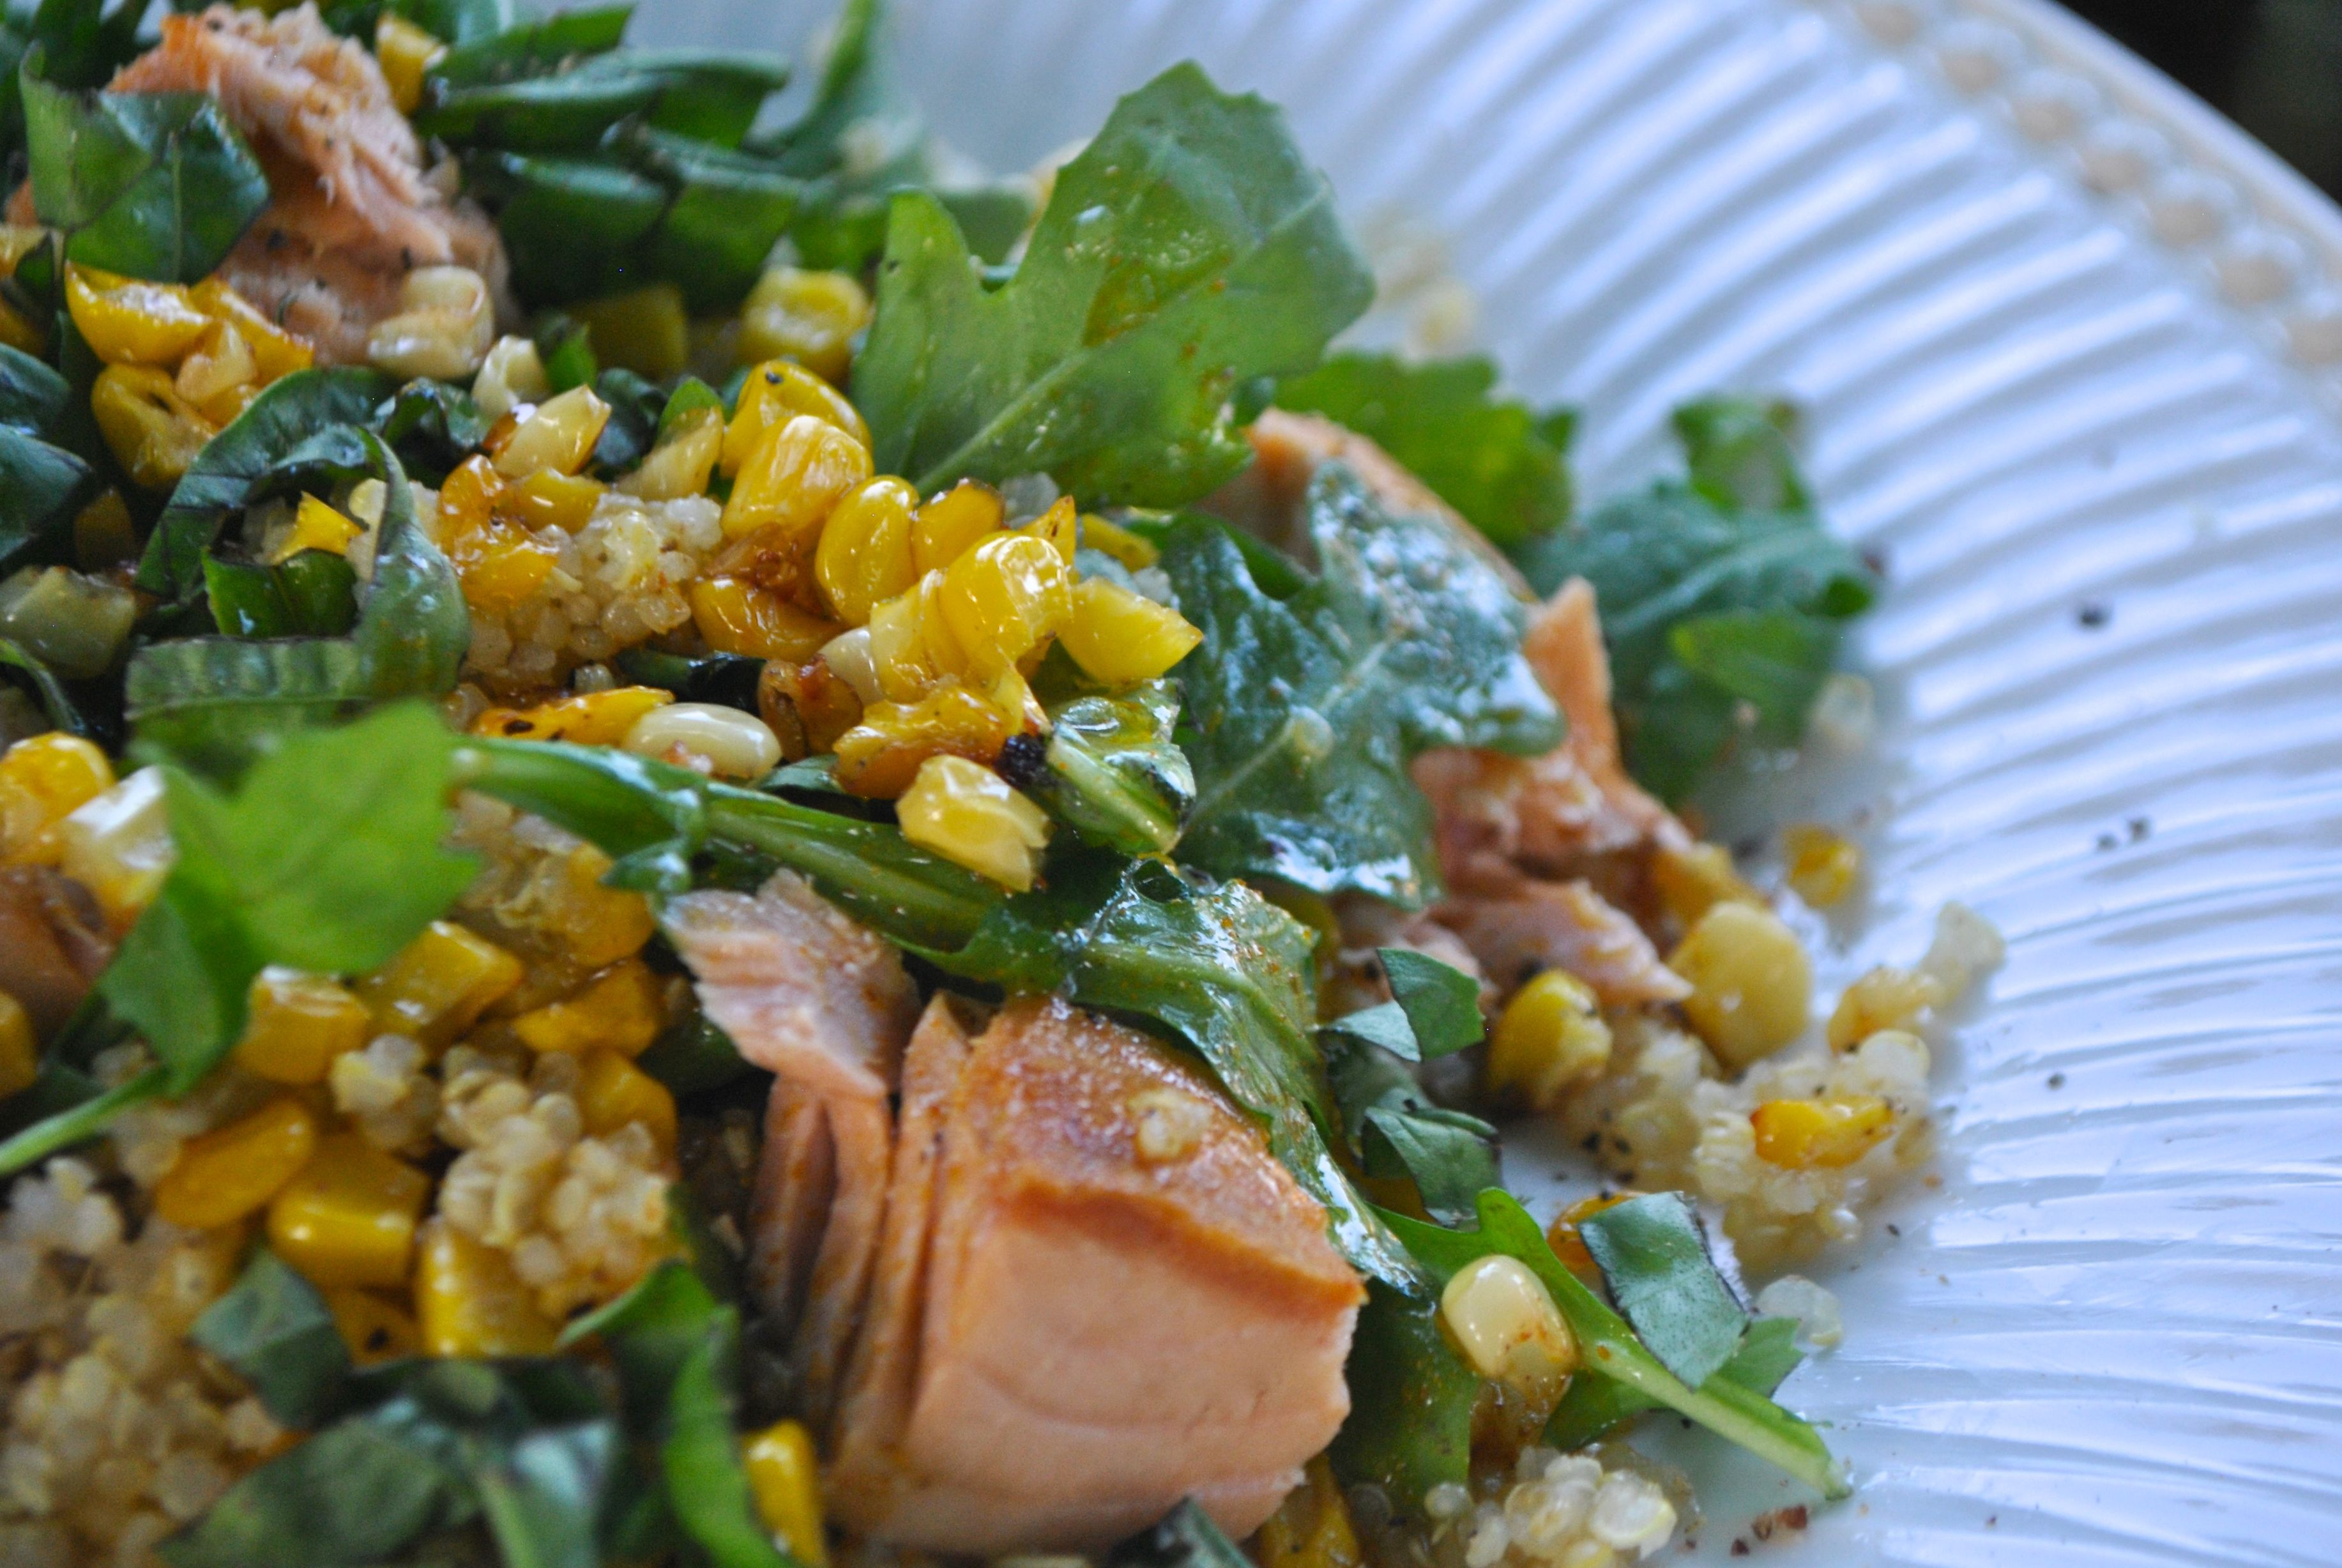 QUINOA AND SALMON SALAD WITH ARUGULA